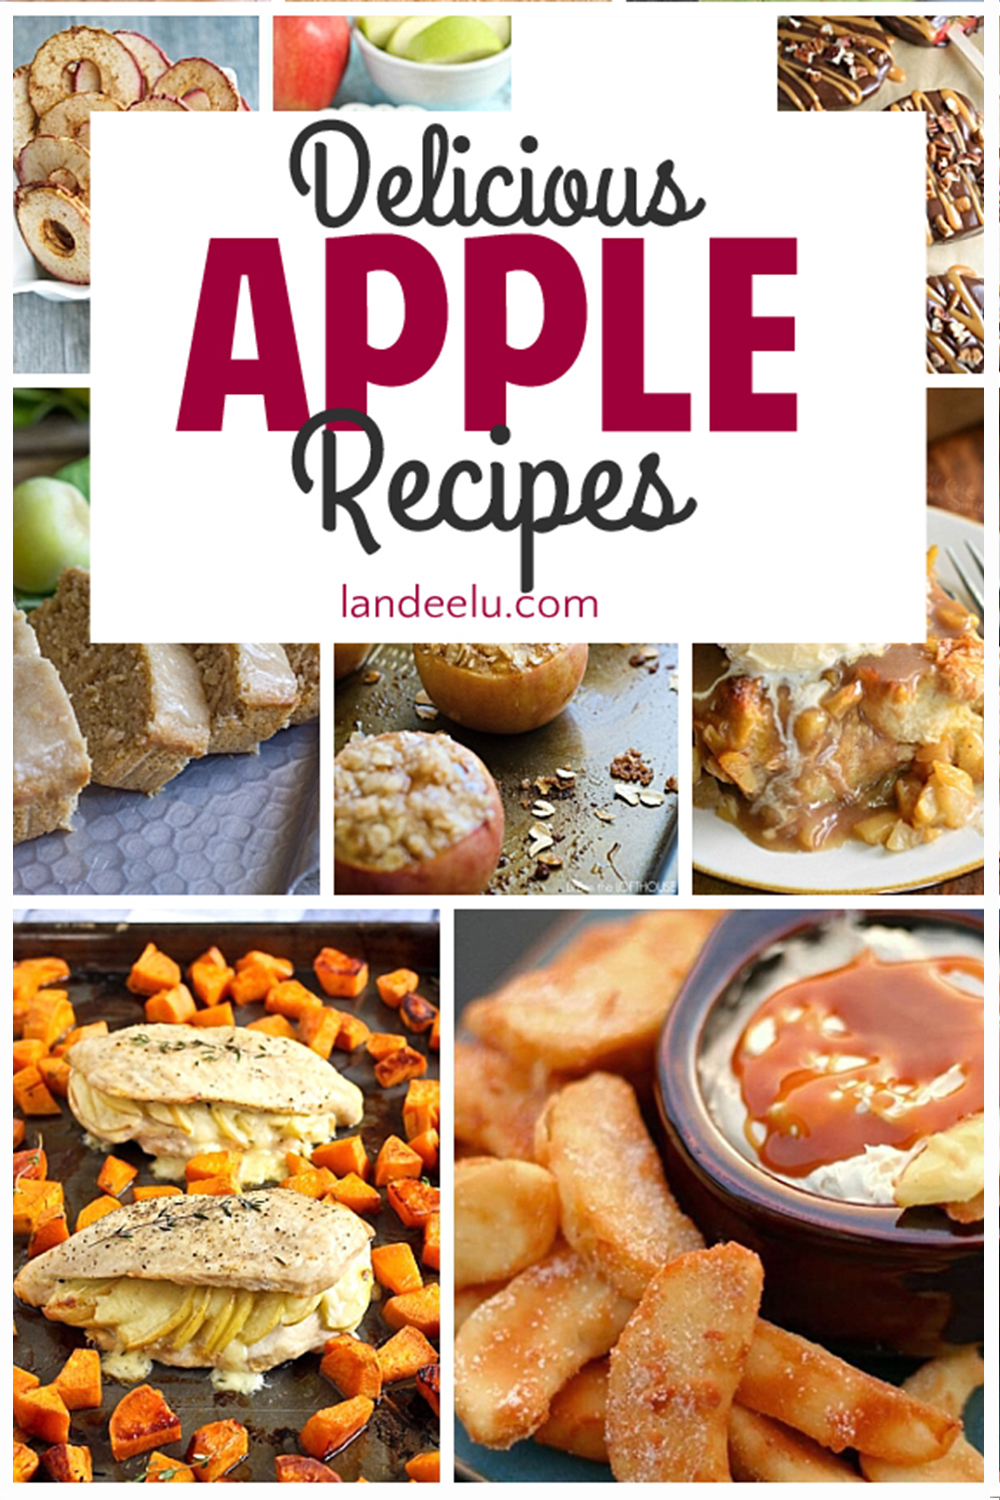 These apple recipes look soooo yummy! I can't wait to try them! #applerecipes #fallrecipes #apples